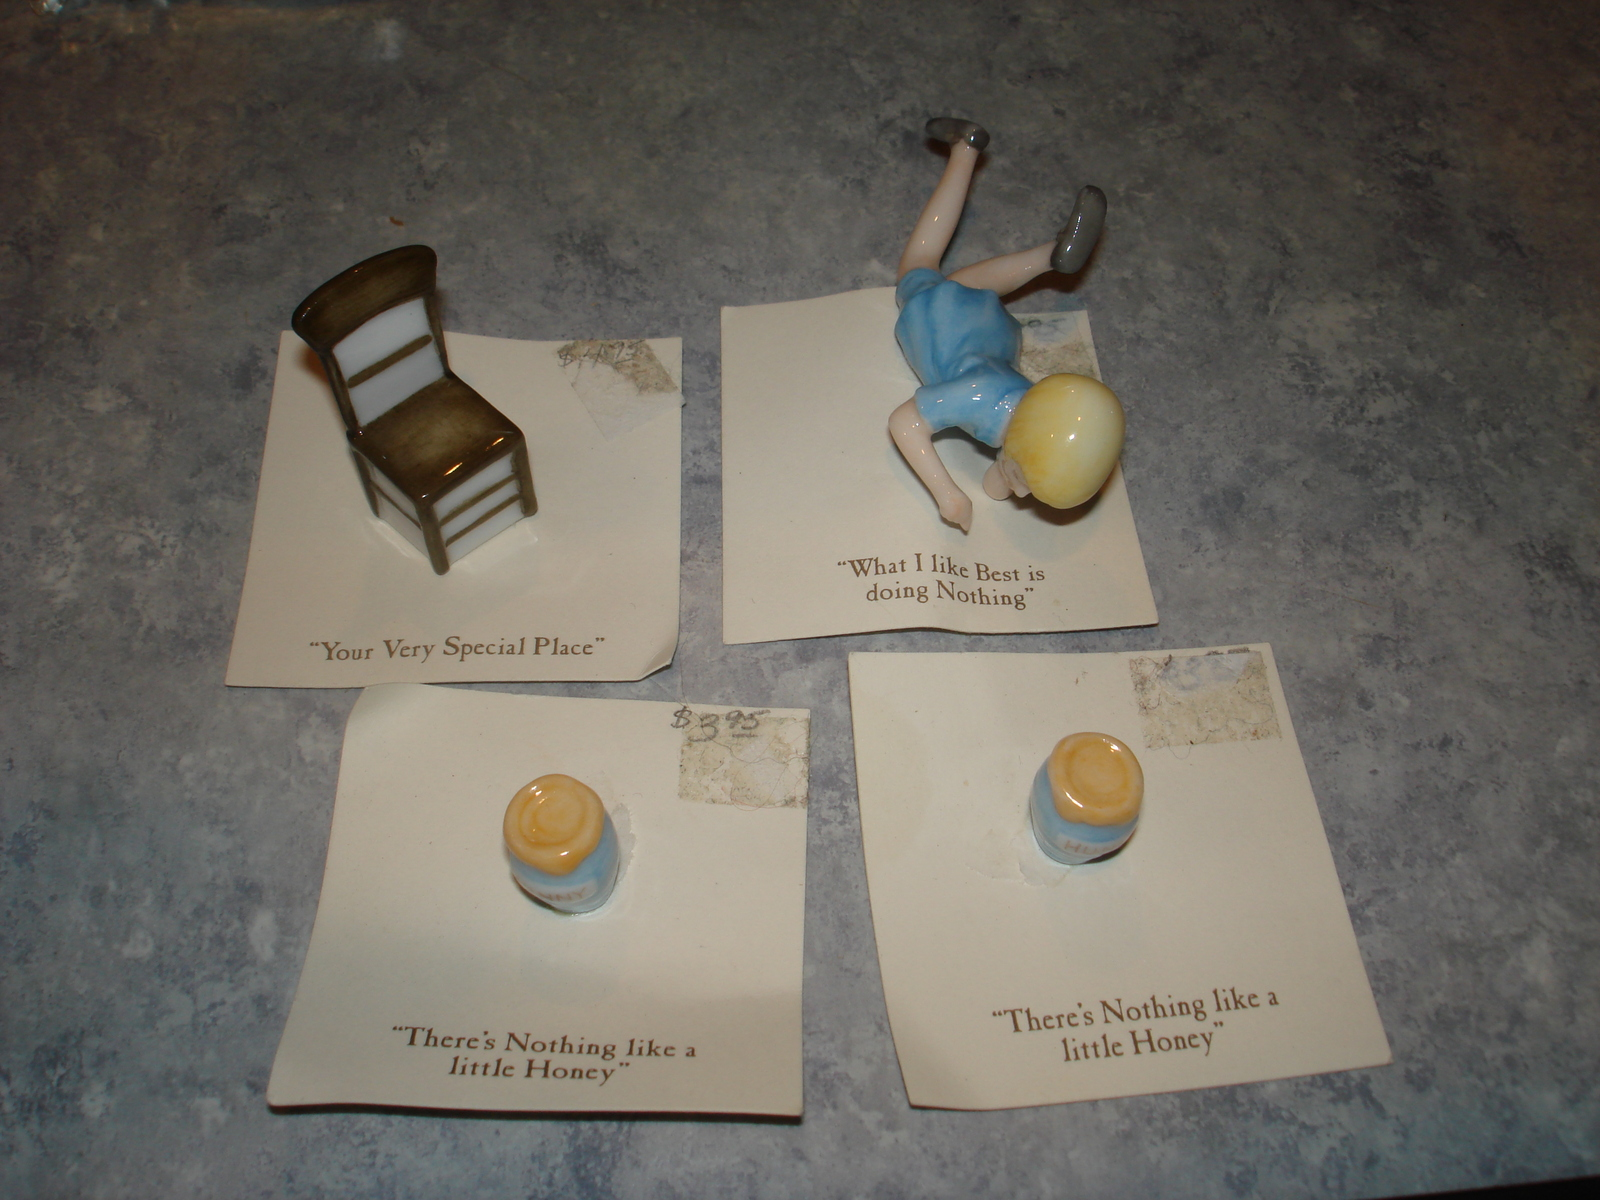 DISNEY WINNIE THE POOH SMALL CERAMIC FIGURES CHRISTOPHER ETC on CARD by MICHEL